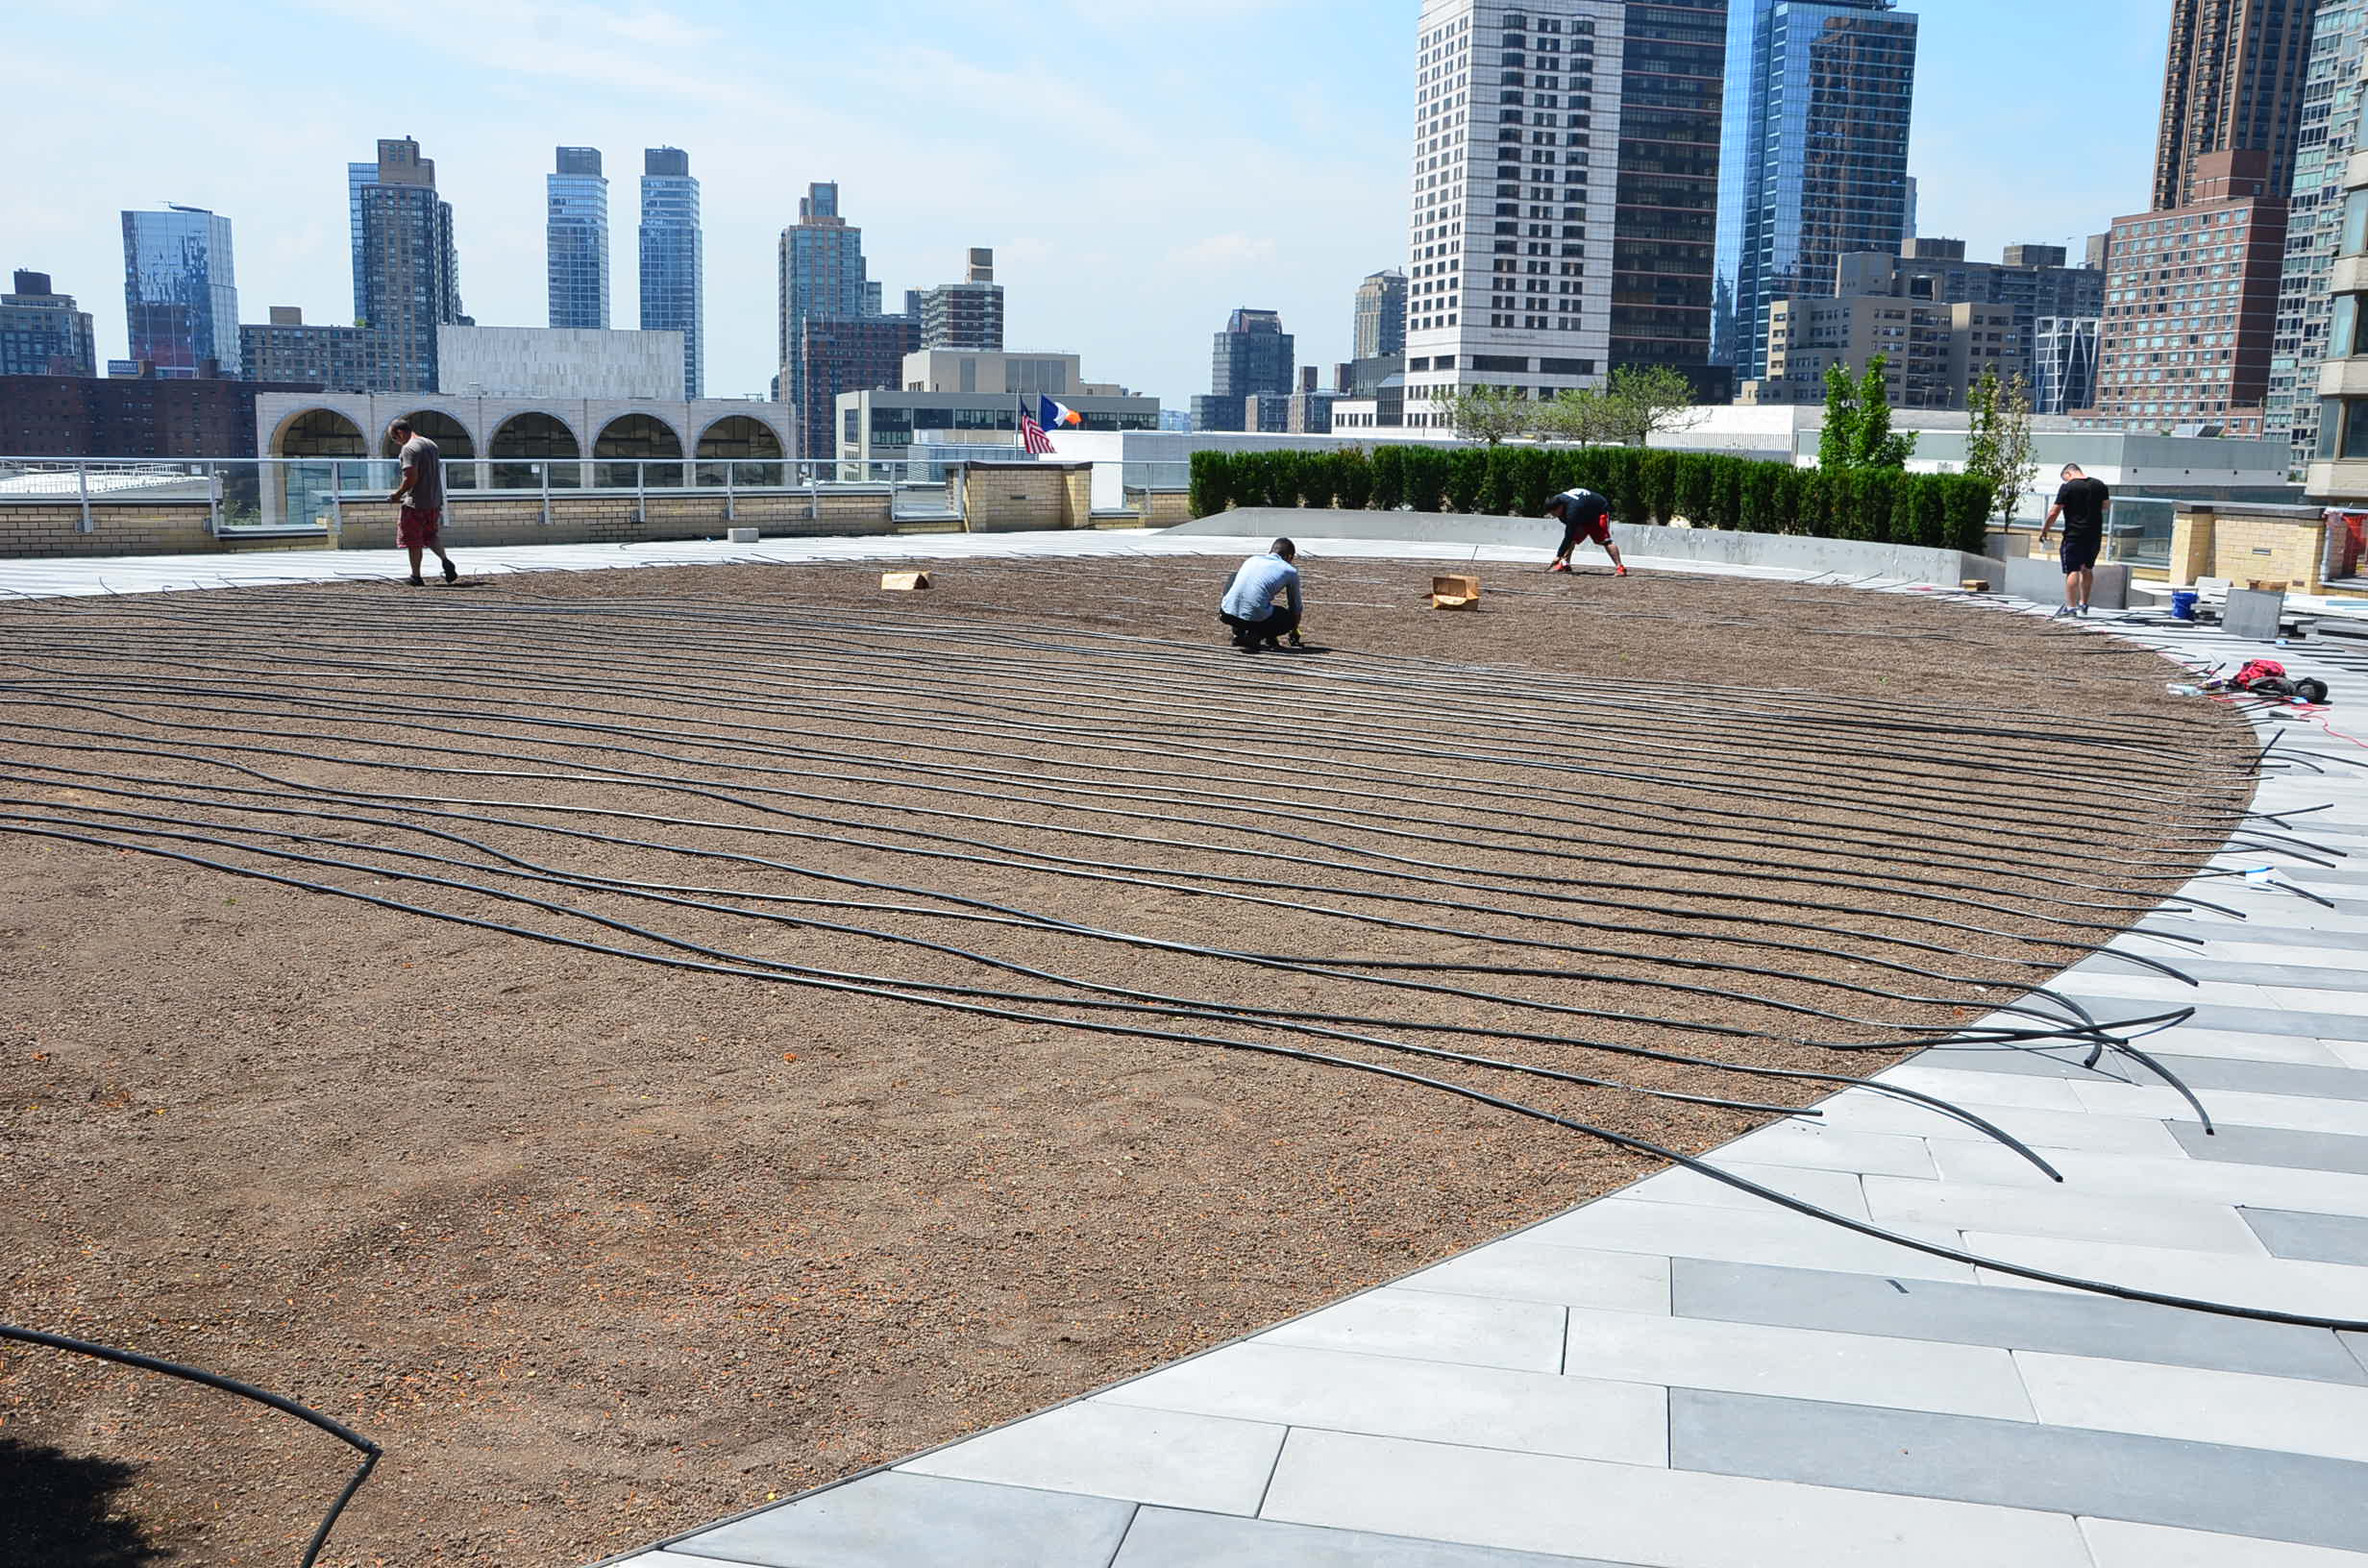 Installing Drip Irrigation for the Roof Lawn